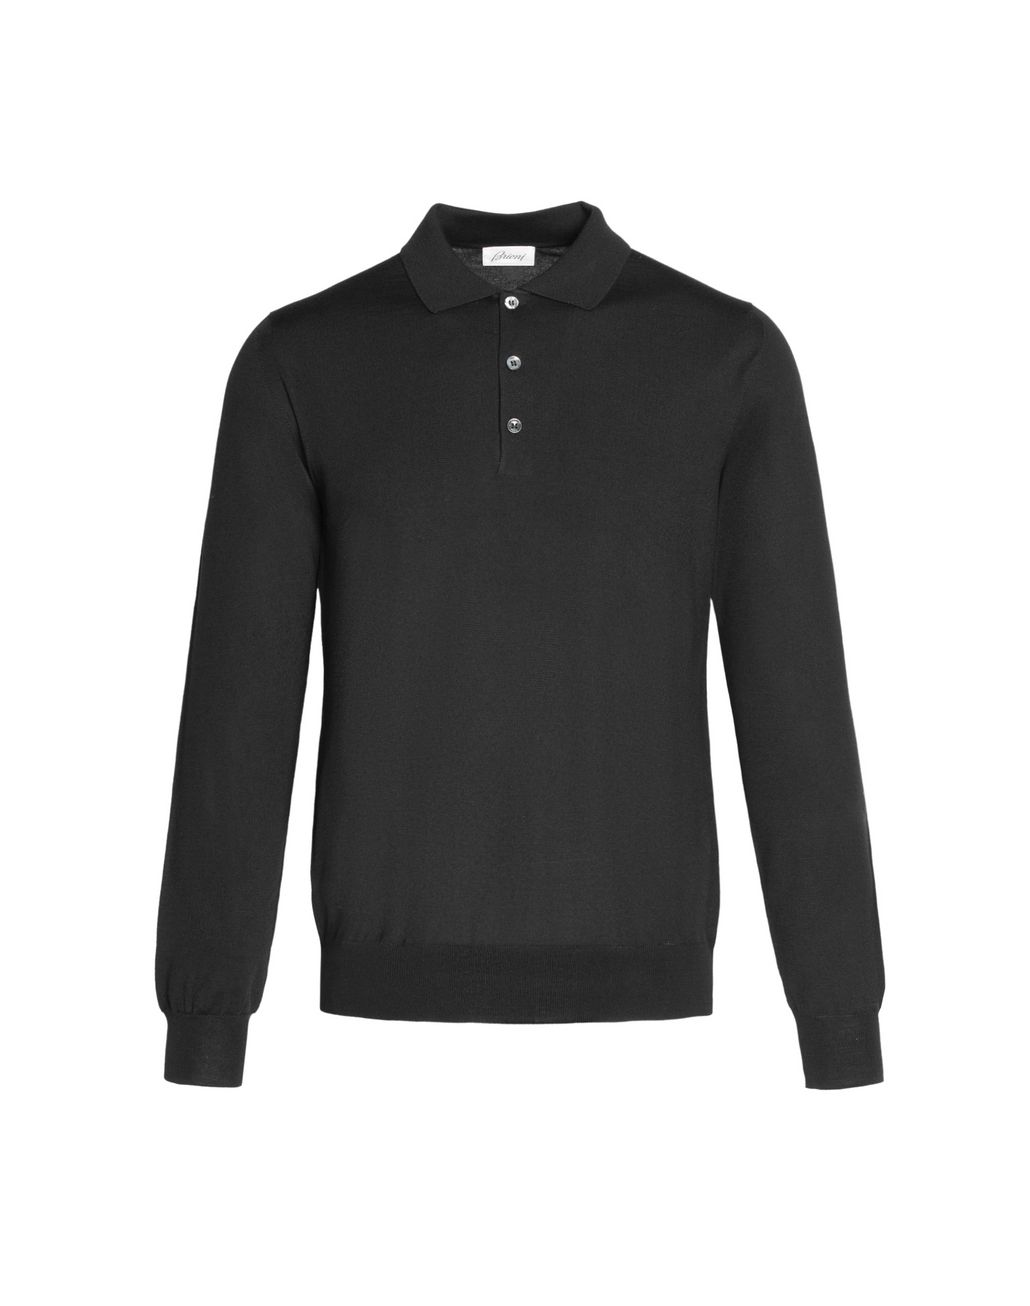 BRIONI  'Essential' Black Long Sleeved Polo Shirt Knitwear Man f